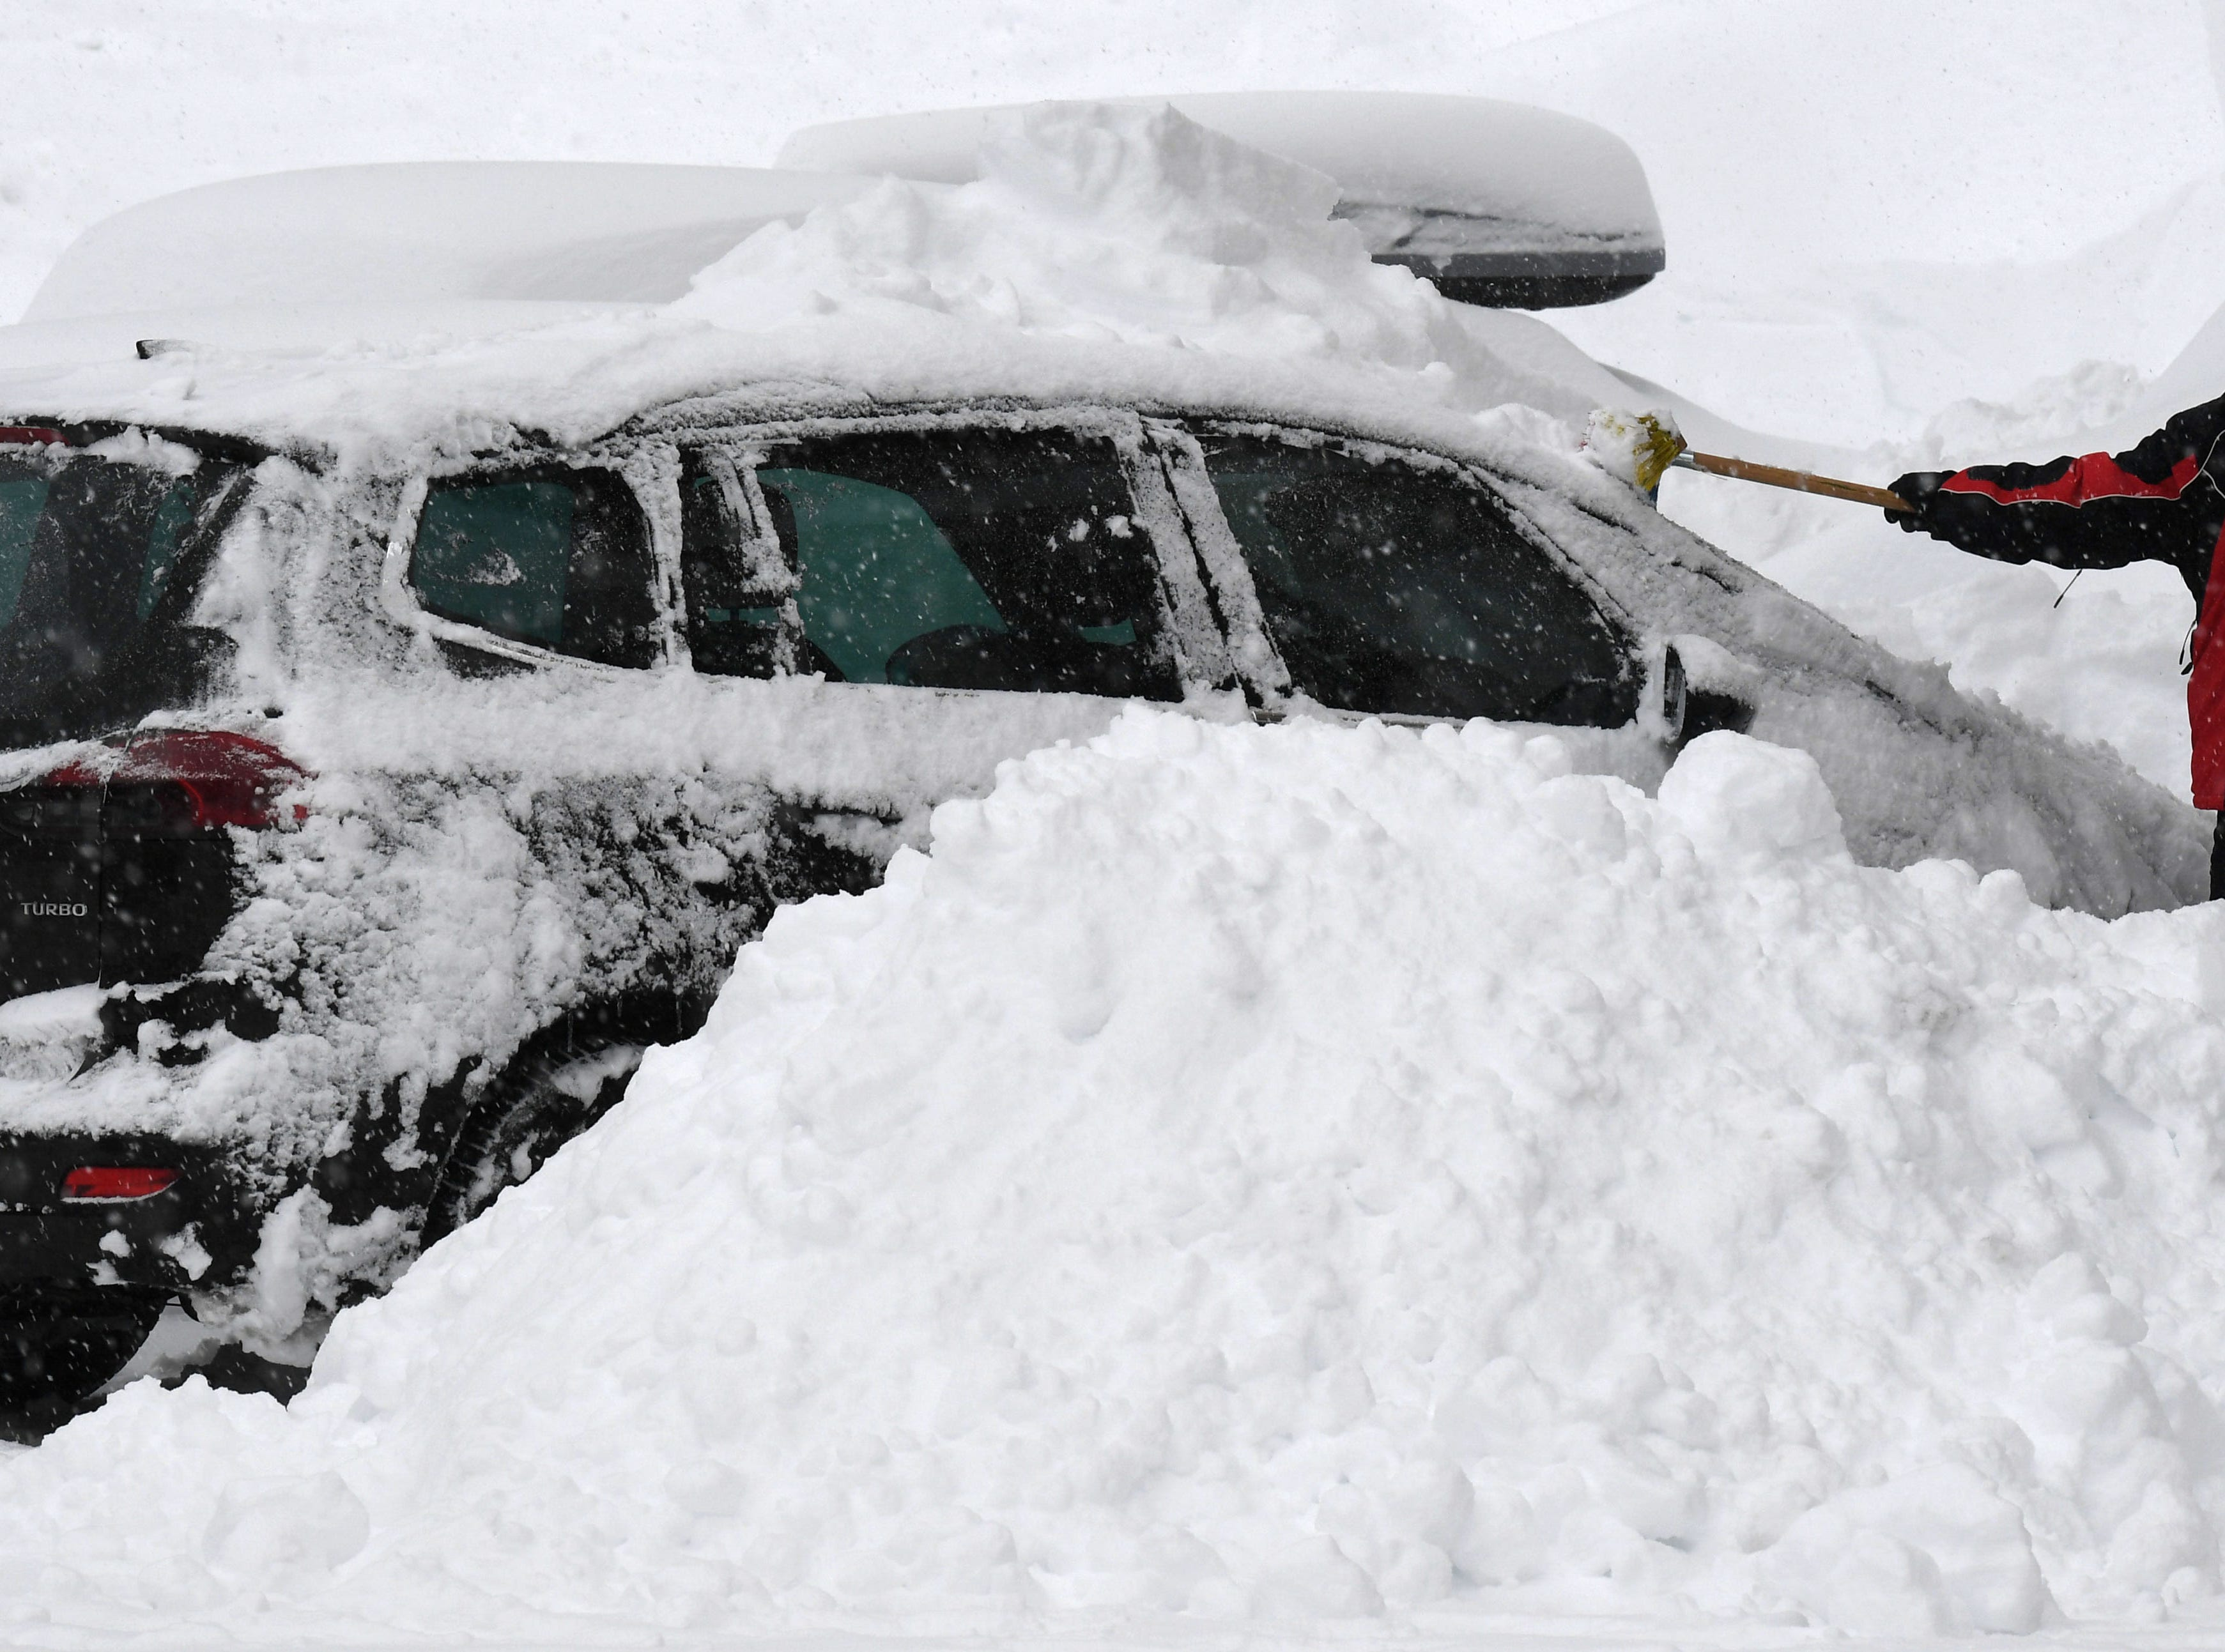 A man removes the snow from his car after heavy snowfall in the small village of Filzmoos, Austria, Jan. 7, 2019.